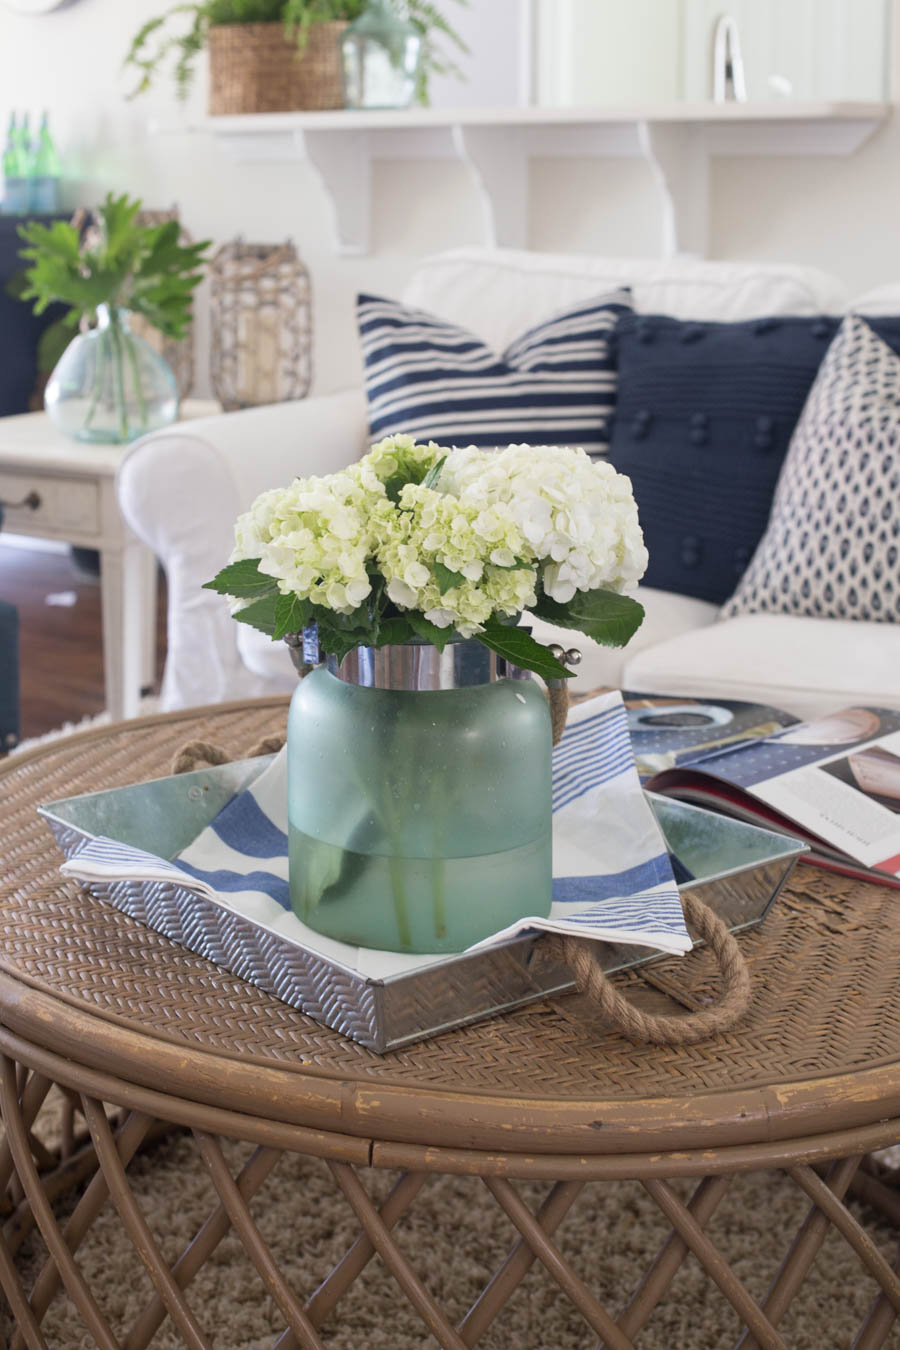 Summer Decorating Ideas 30 summer decorating ideas - easy ways to decorate your home for